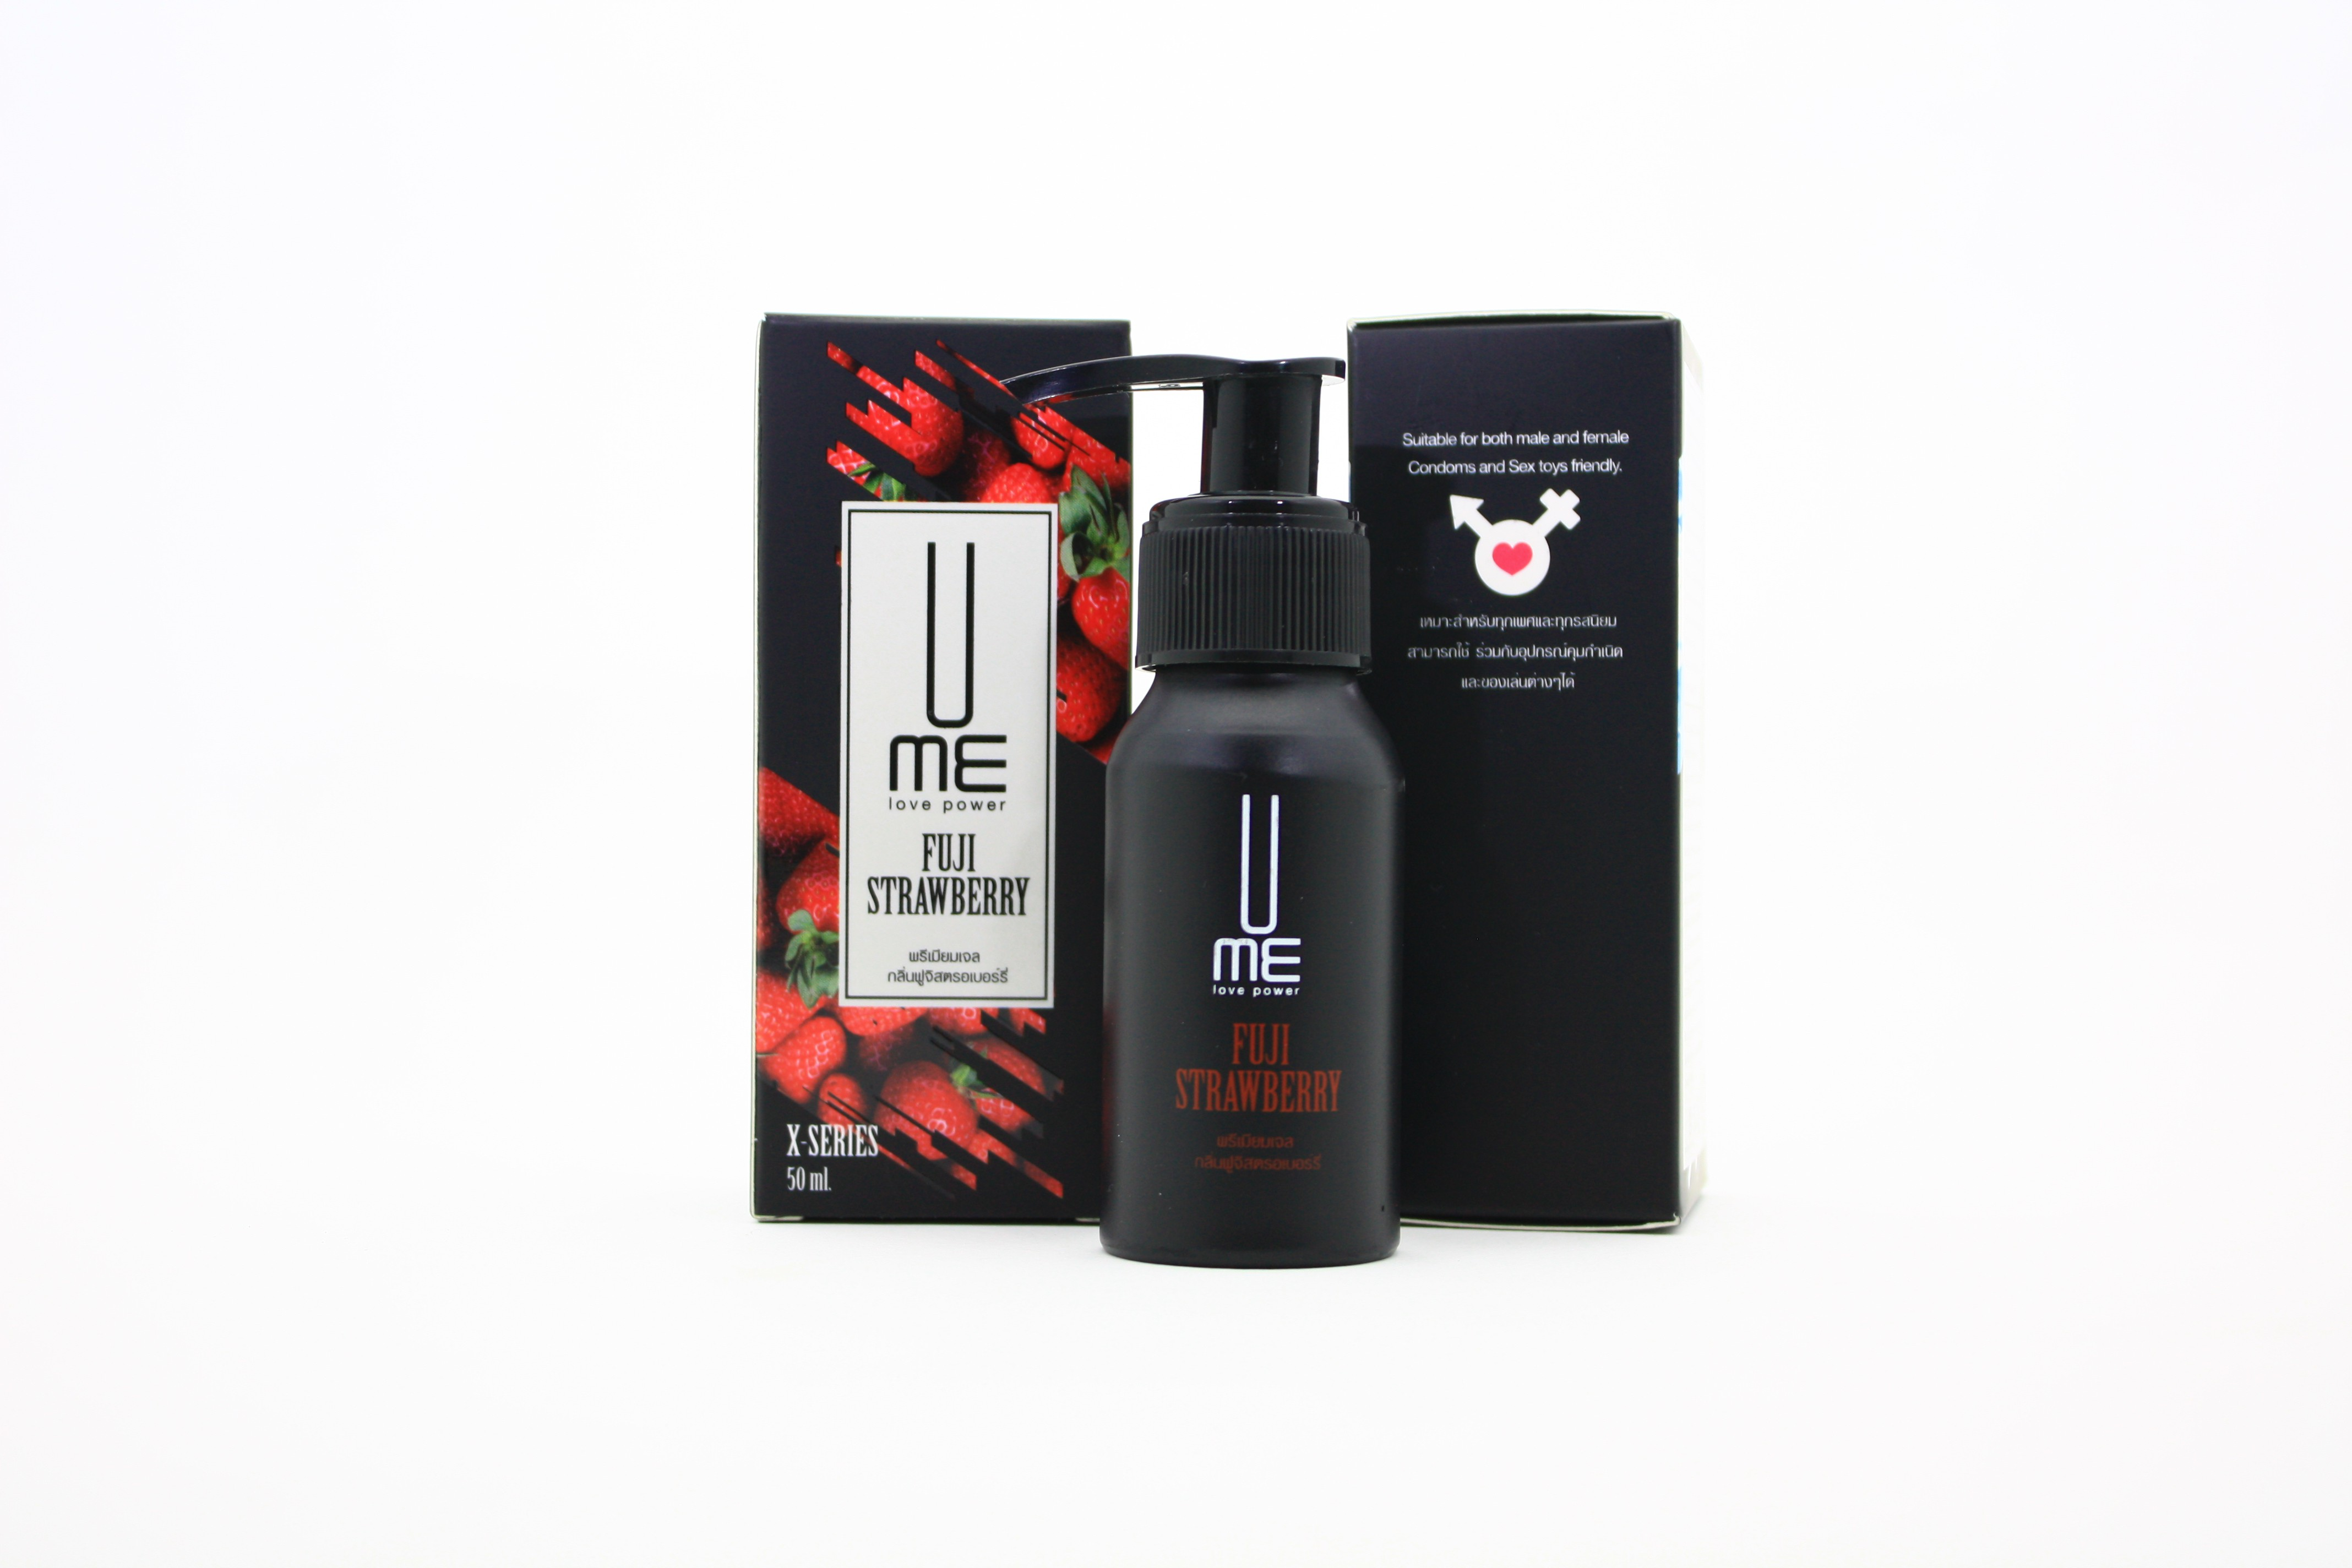 UME Love Power Gel X-Series Fuji Strawberry-50ml